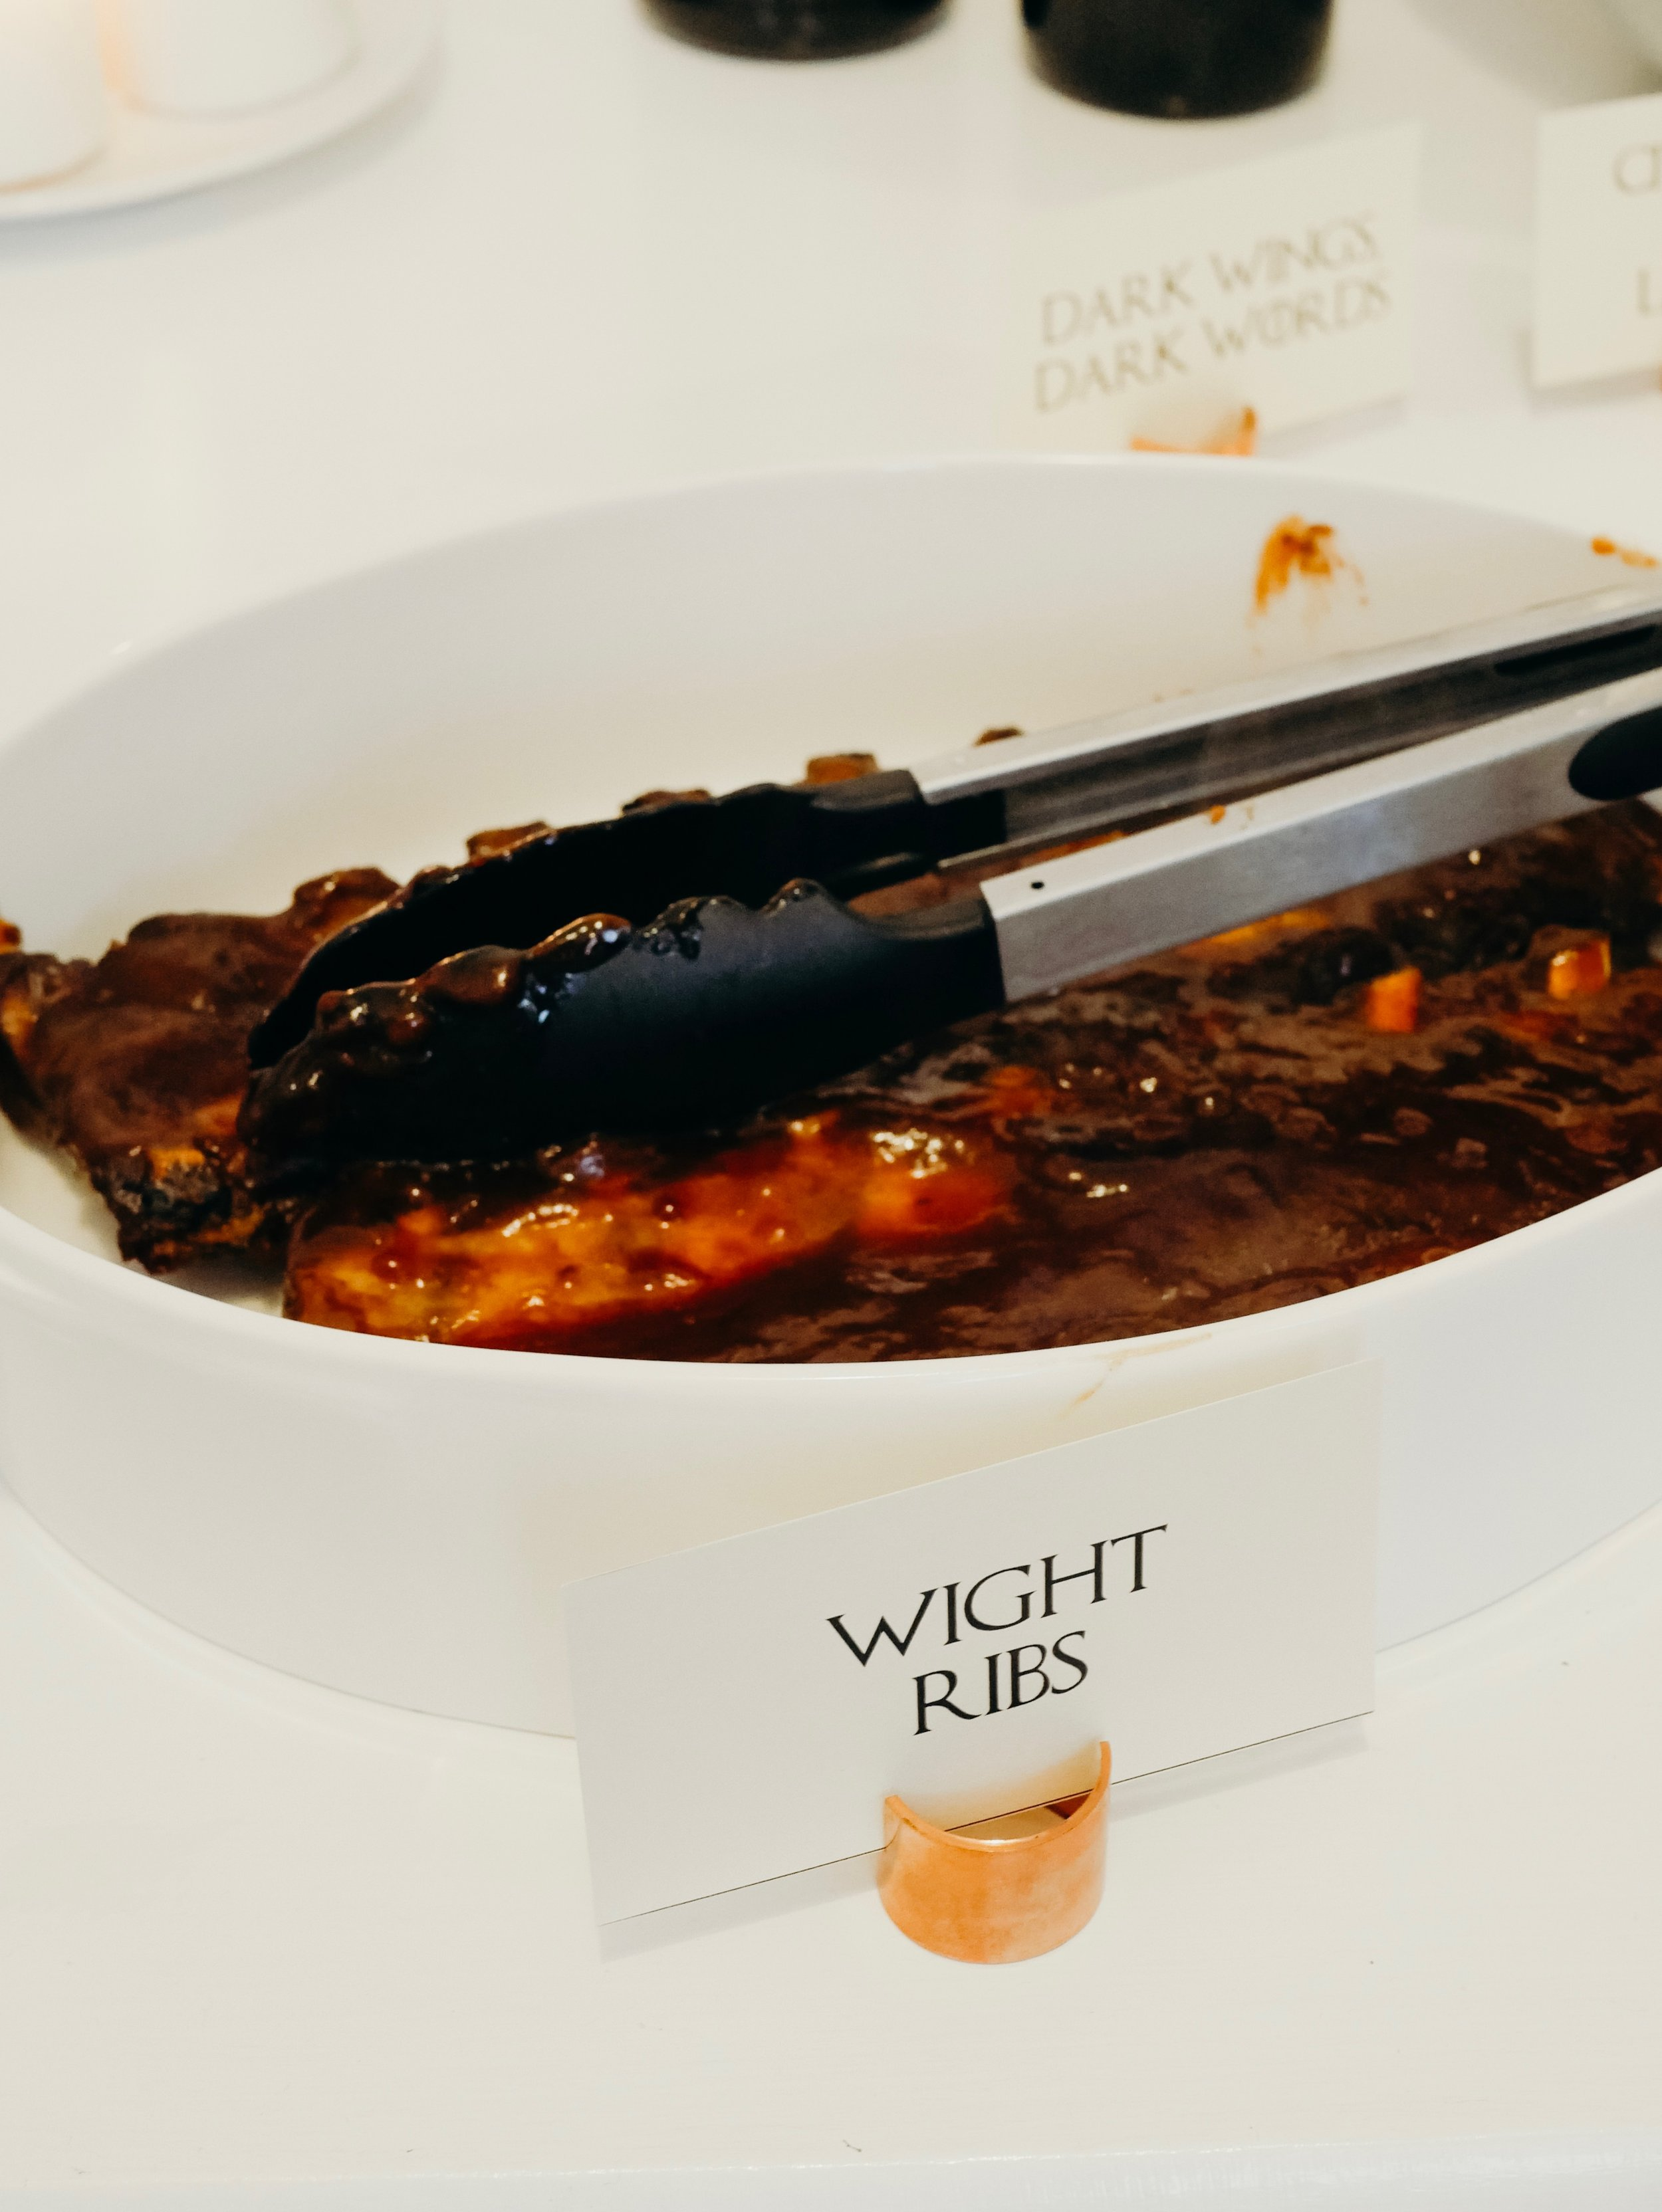 Game of Thrones Party Food - Wight Ribs